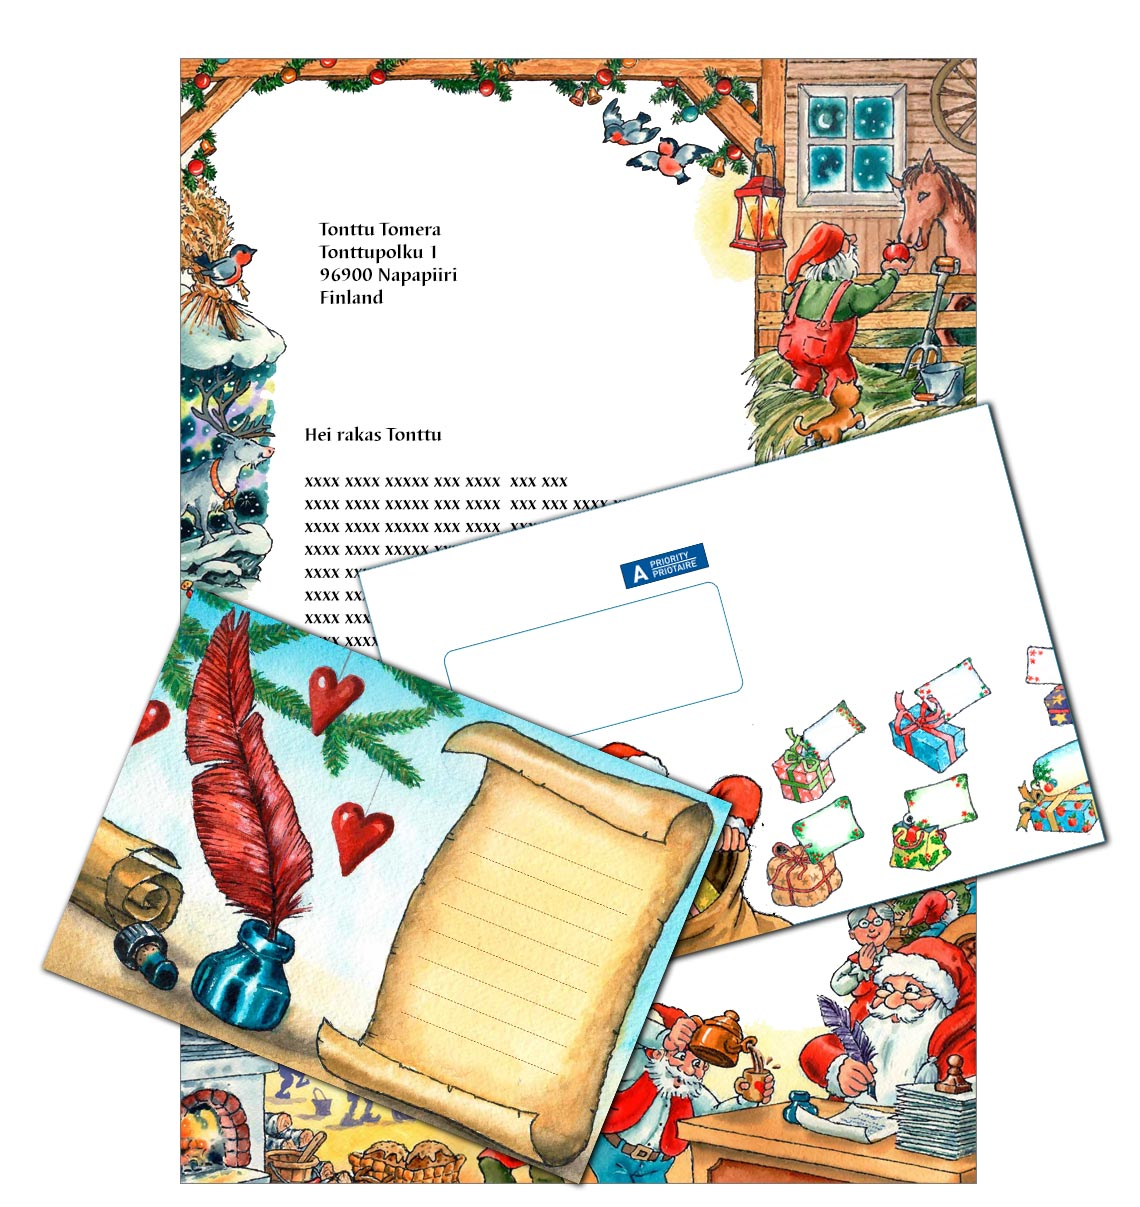 Personalized letter from santa claus personalized letter from santa spiritdancerdesigns Choice Image